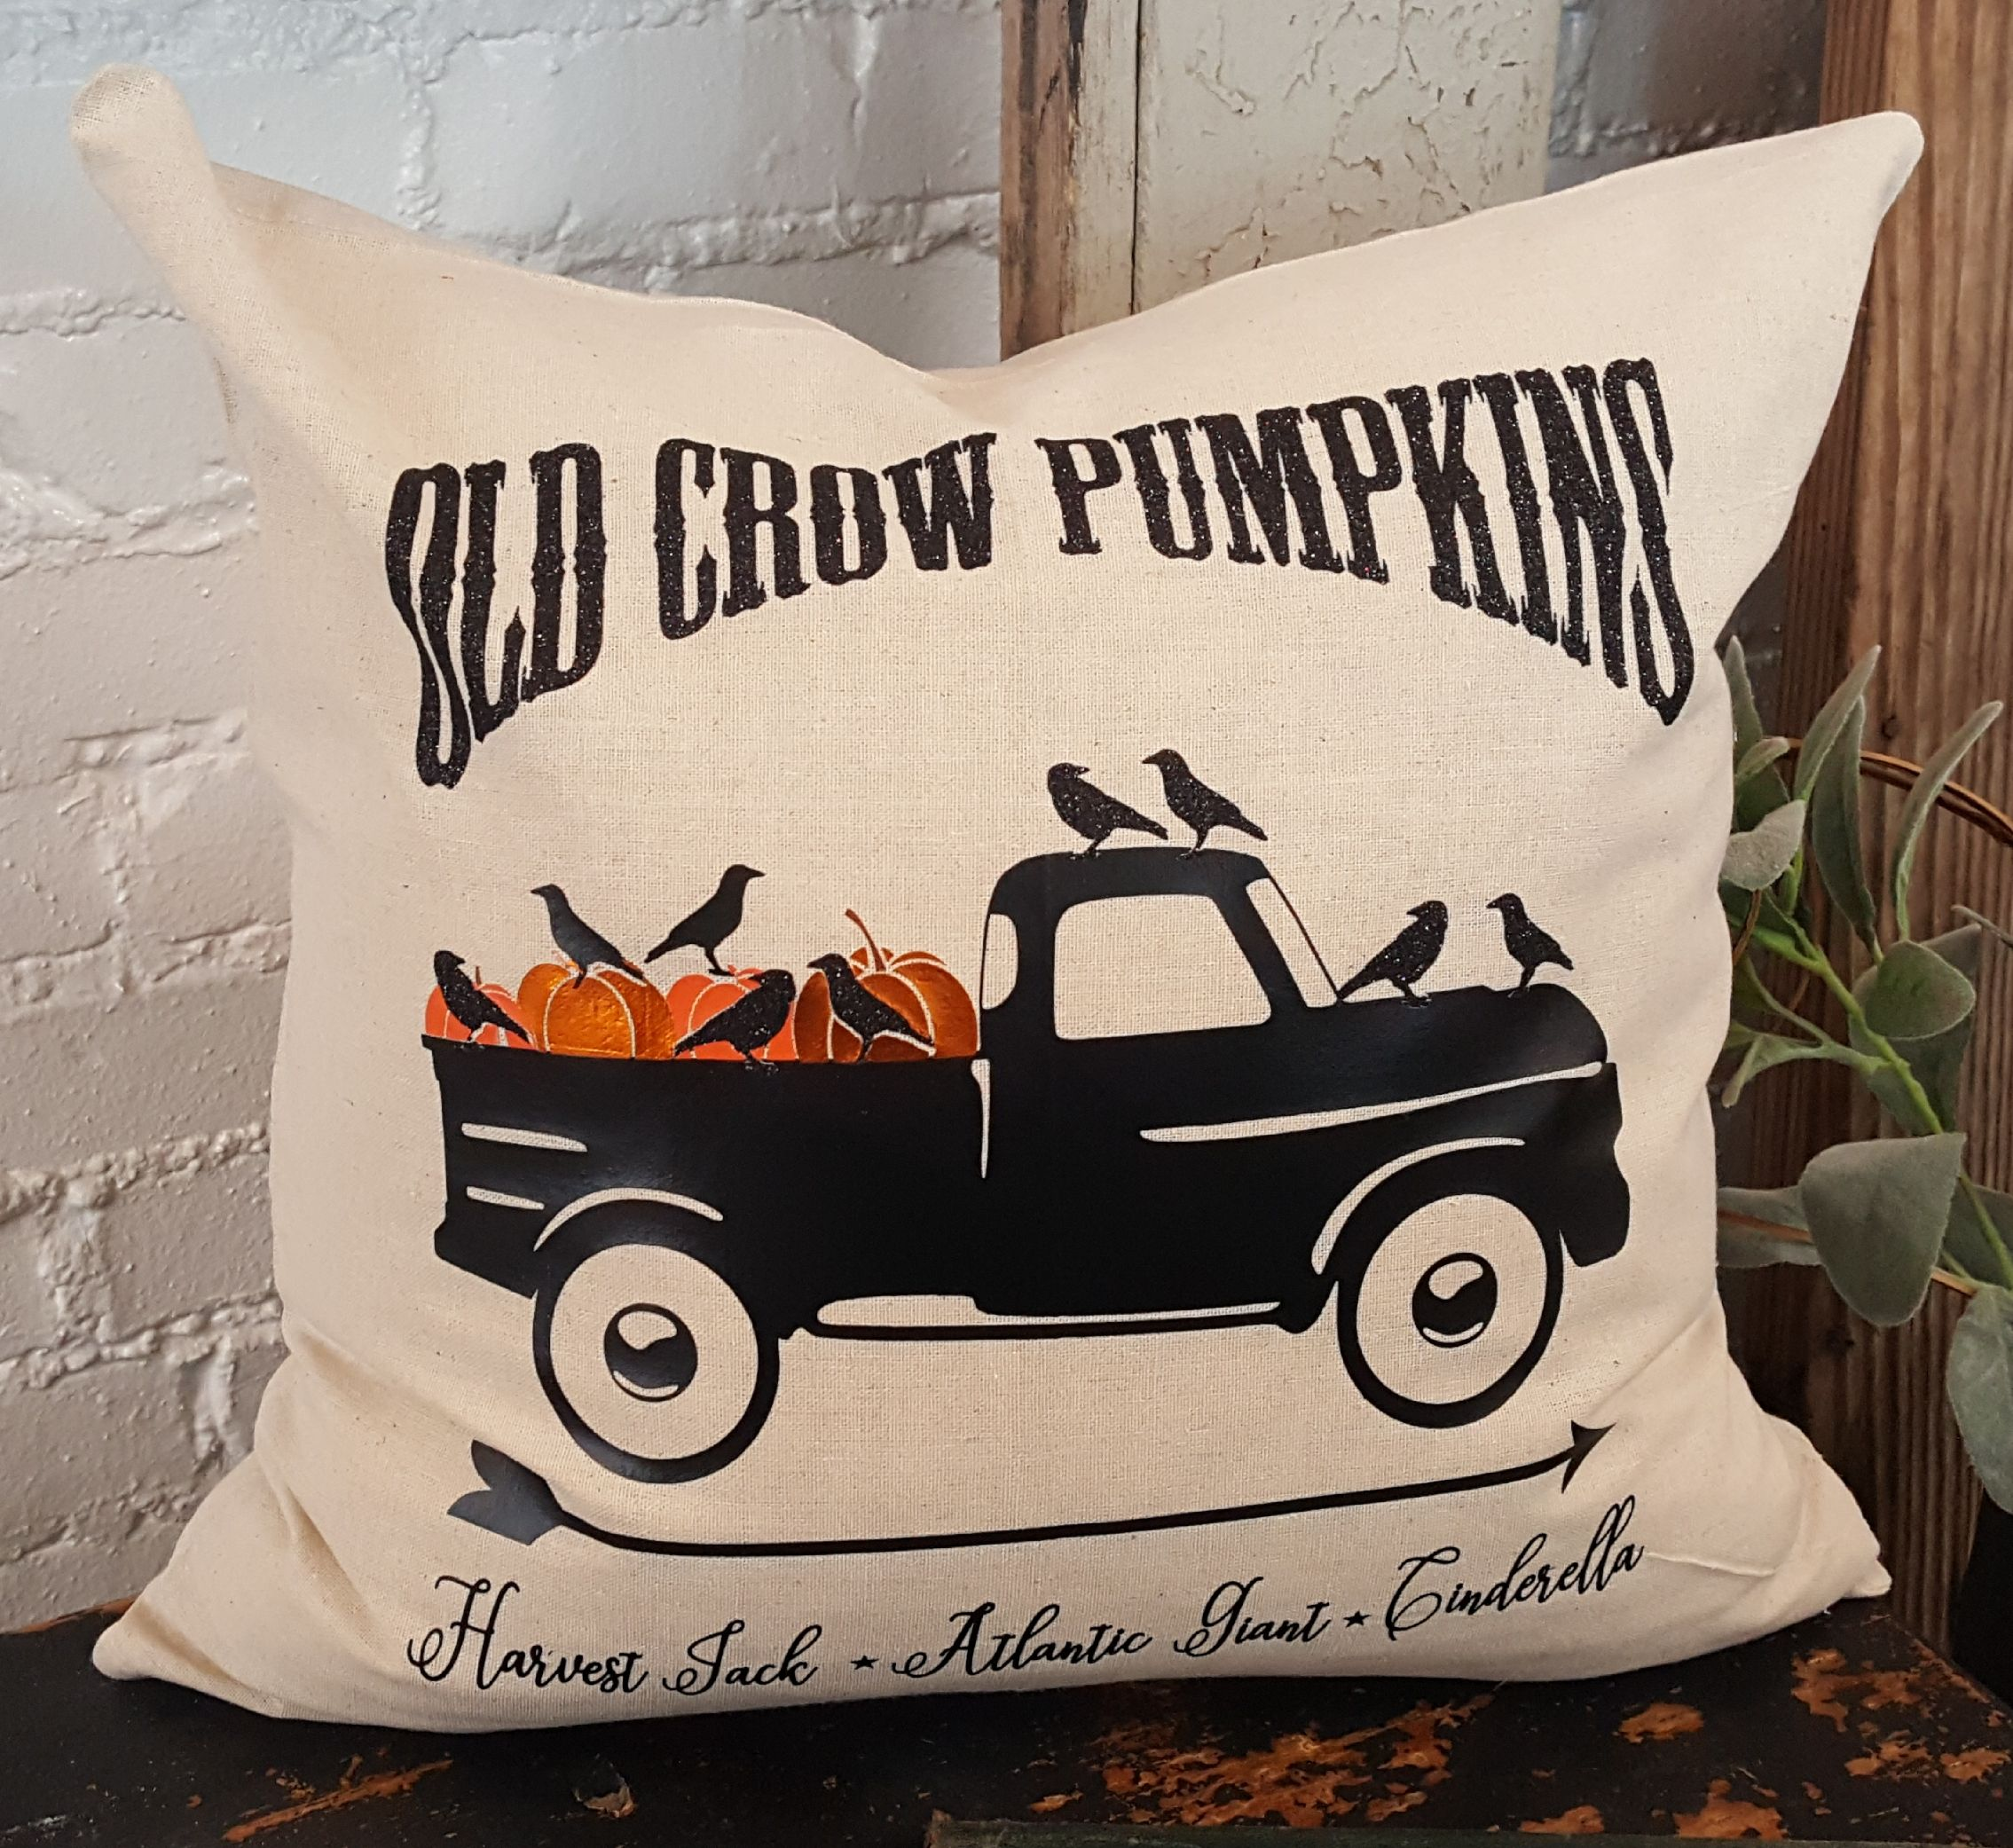 Pillow Ideas For Camping on trash can for camping, dresses for camping, luggage for camping, storage bins for camping, diy projects for camping, personalized signs for camping, mason jars for camping, ground cloth for camping, cool box for camping, 6 man tents for camping, boxes for camping, bibs for camping, 5 person tents for camping, decorations for camping, food for camping, handbags for camping, comforters for camping, high chairs for camping, puzzles for camping, tablecloths for camping,